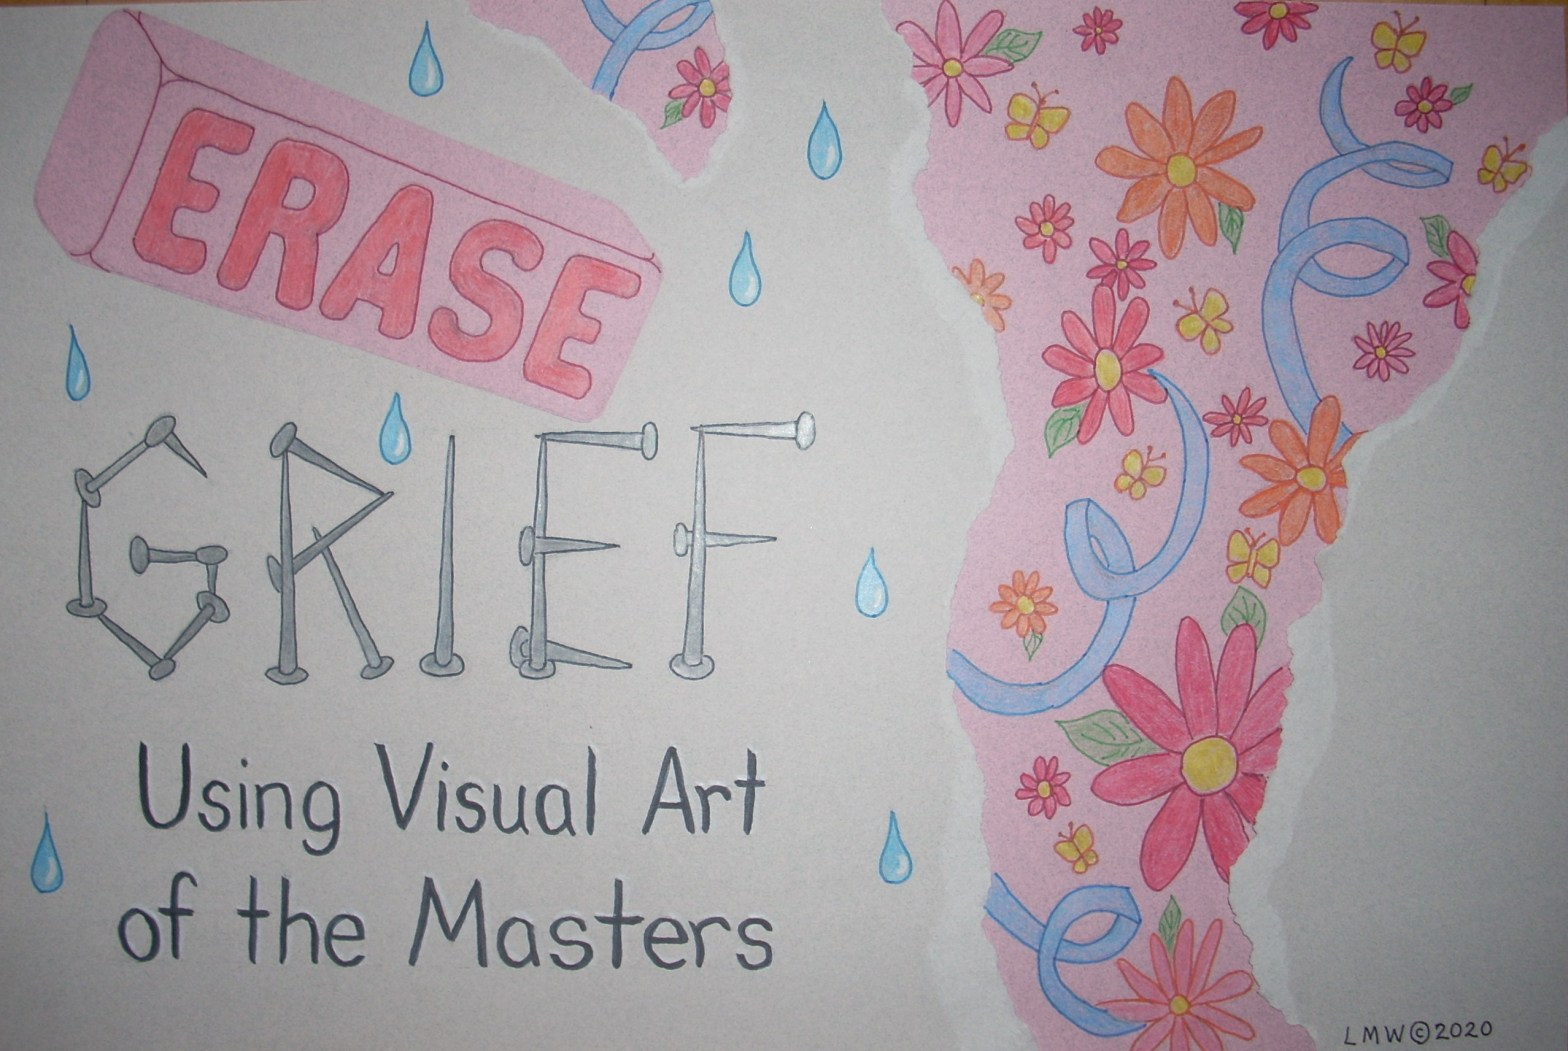 an illustration of the title, Erase Grief, Using Visual Art of the Masters. An eraser is erasing the word grief, revealing flowers beneath the gray surface